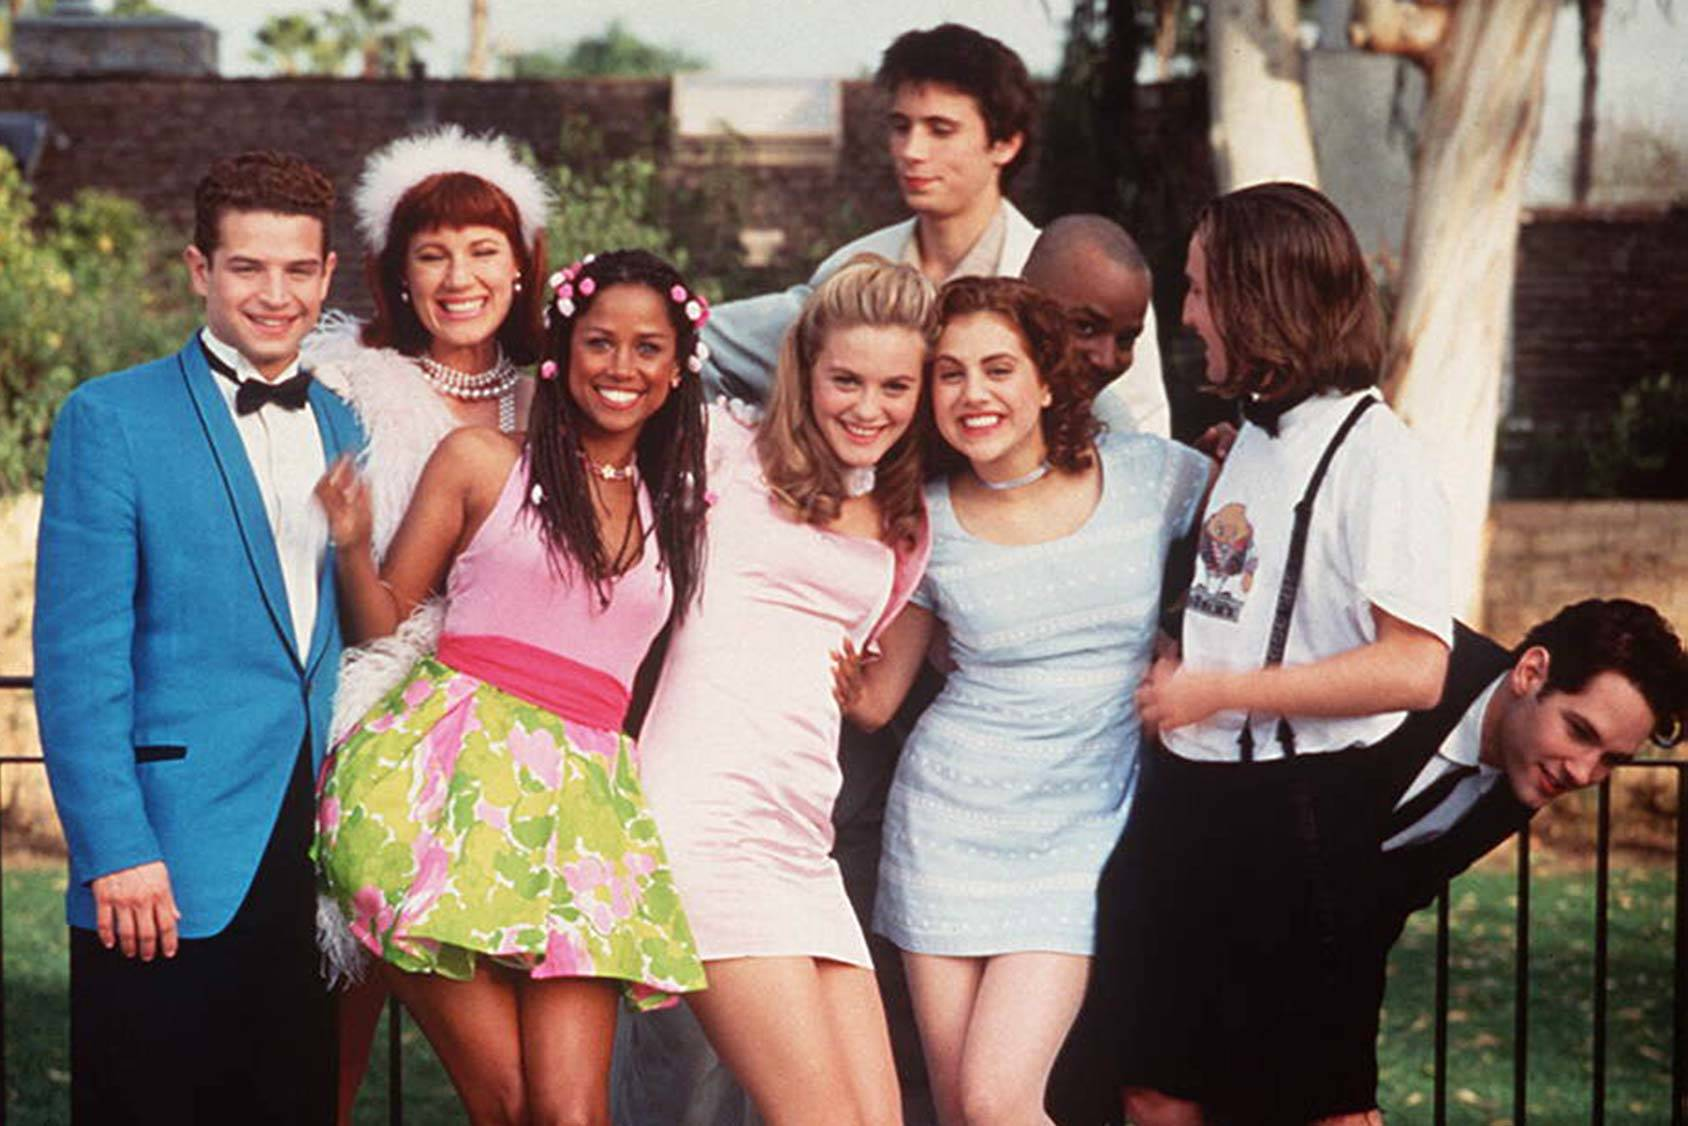 Cher and the gang from Clueless, All Over Press